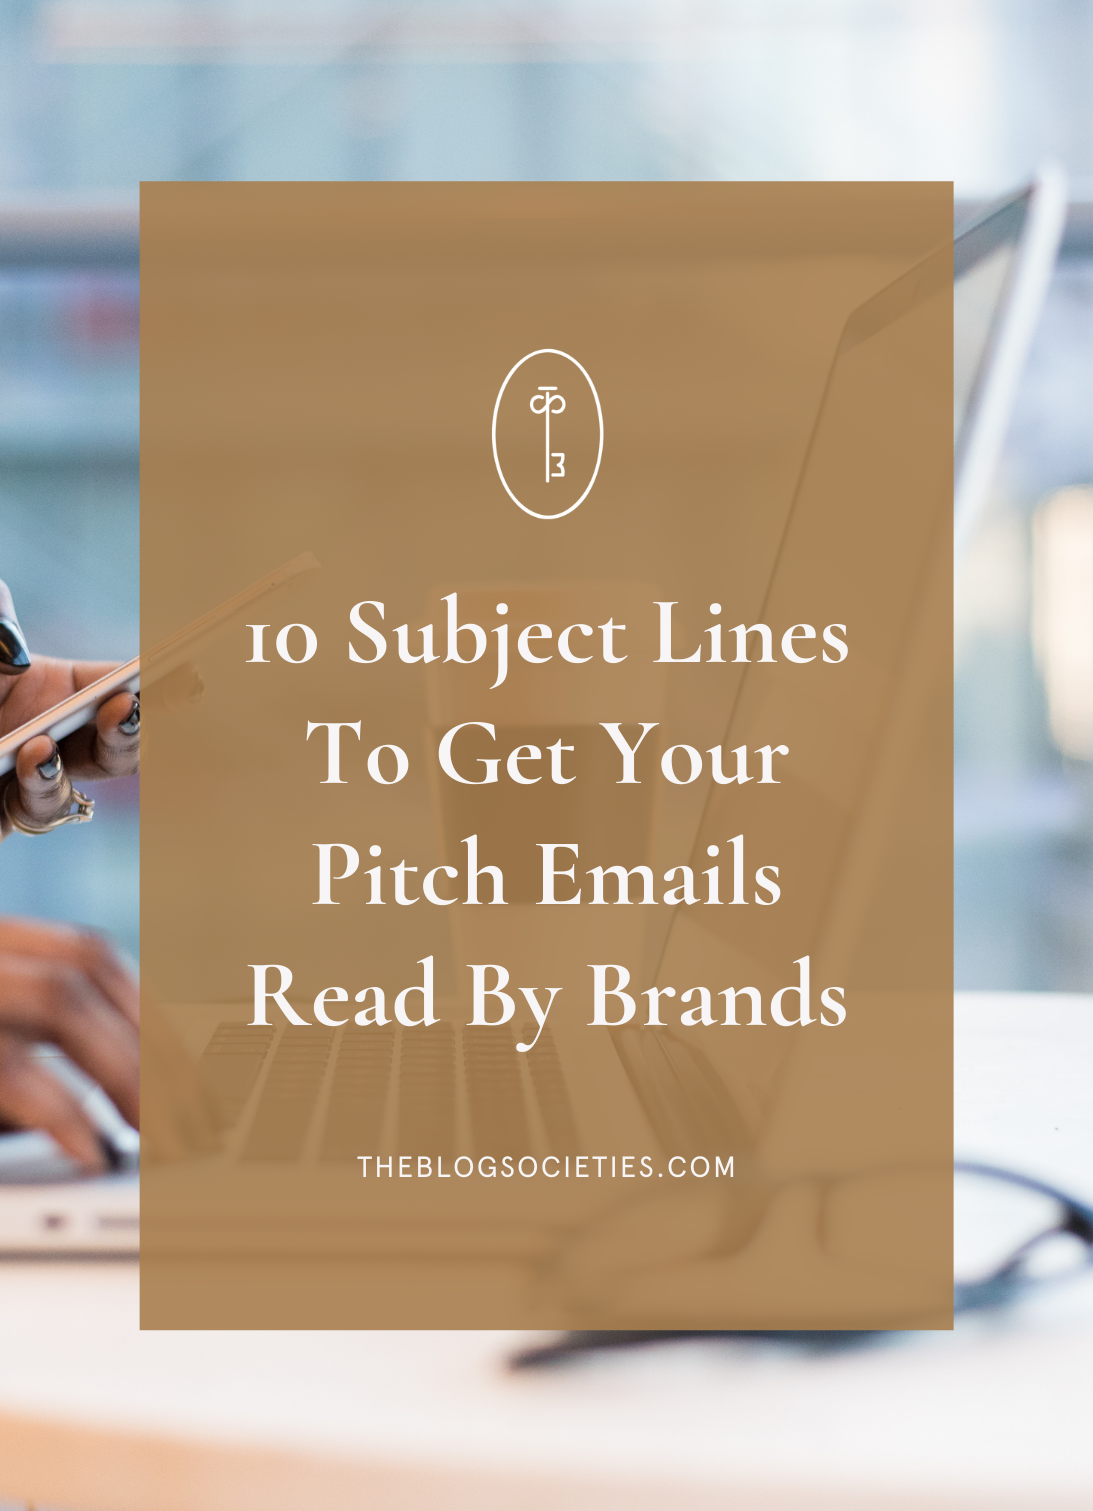 10 Subject Lines To Get Your Pitch Emails Read By Brands